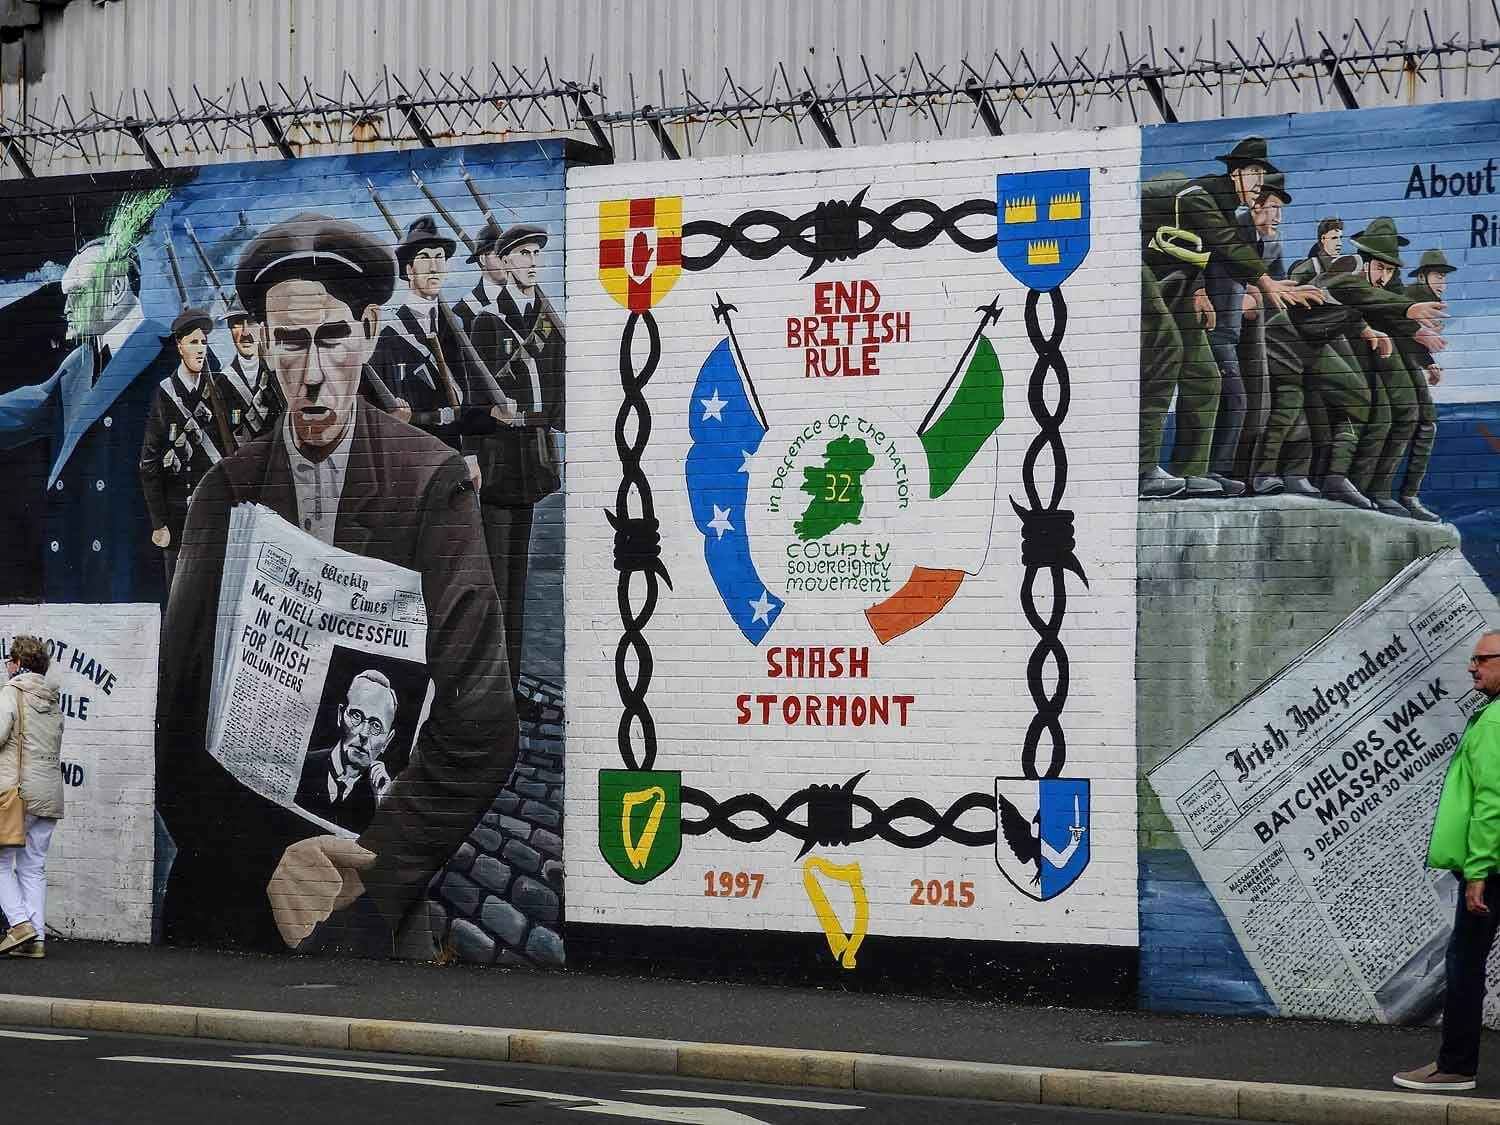 northern-ireland-belfast-peace-wall-troubles-ira.jpg